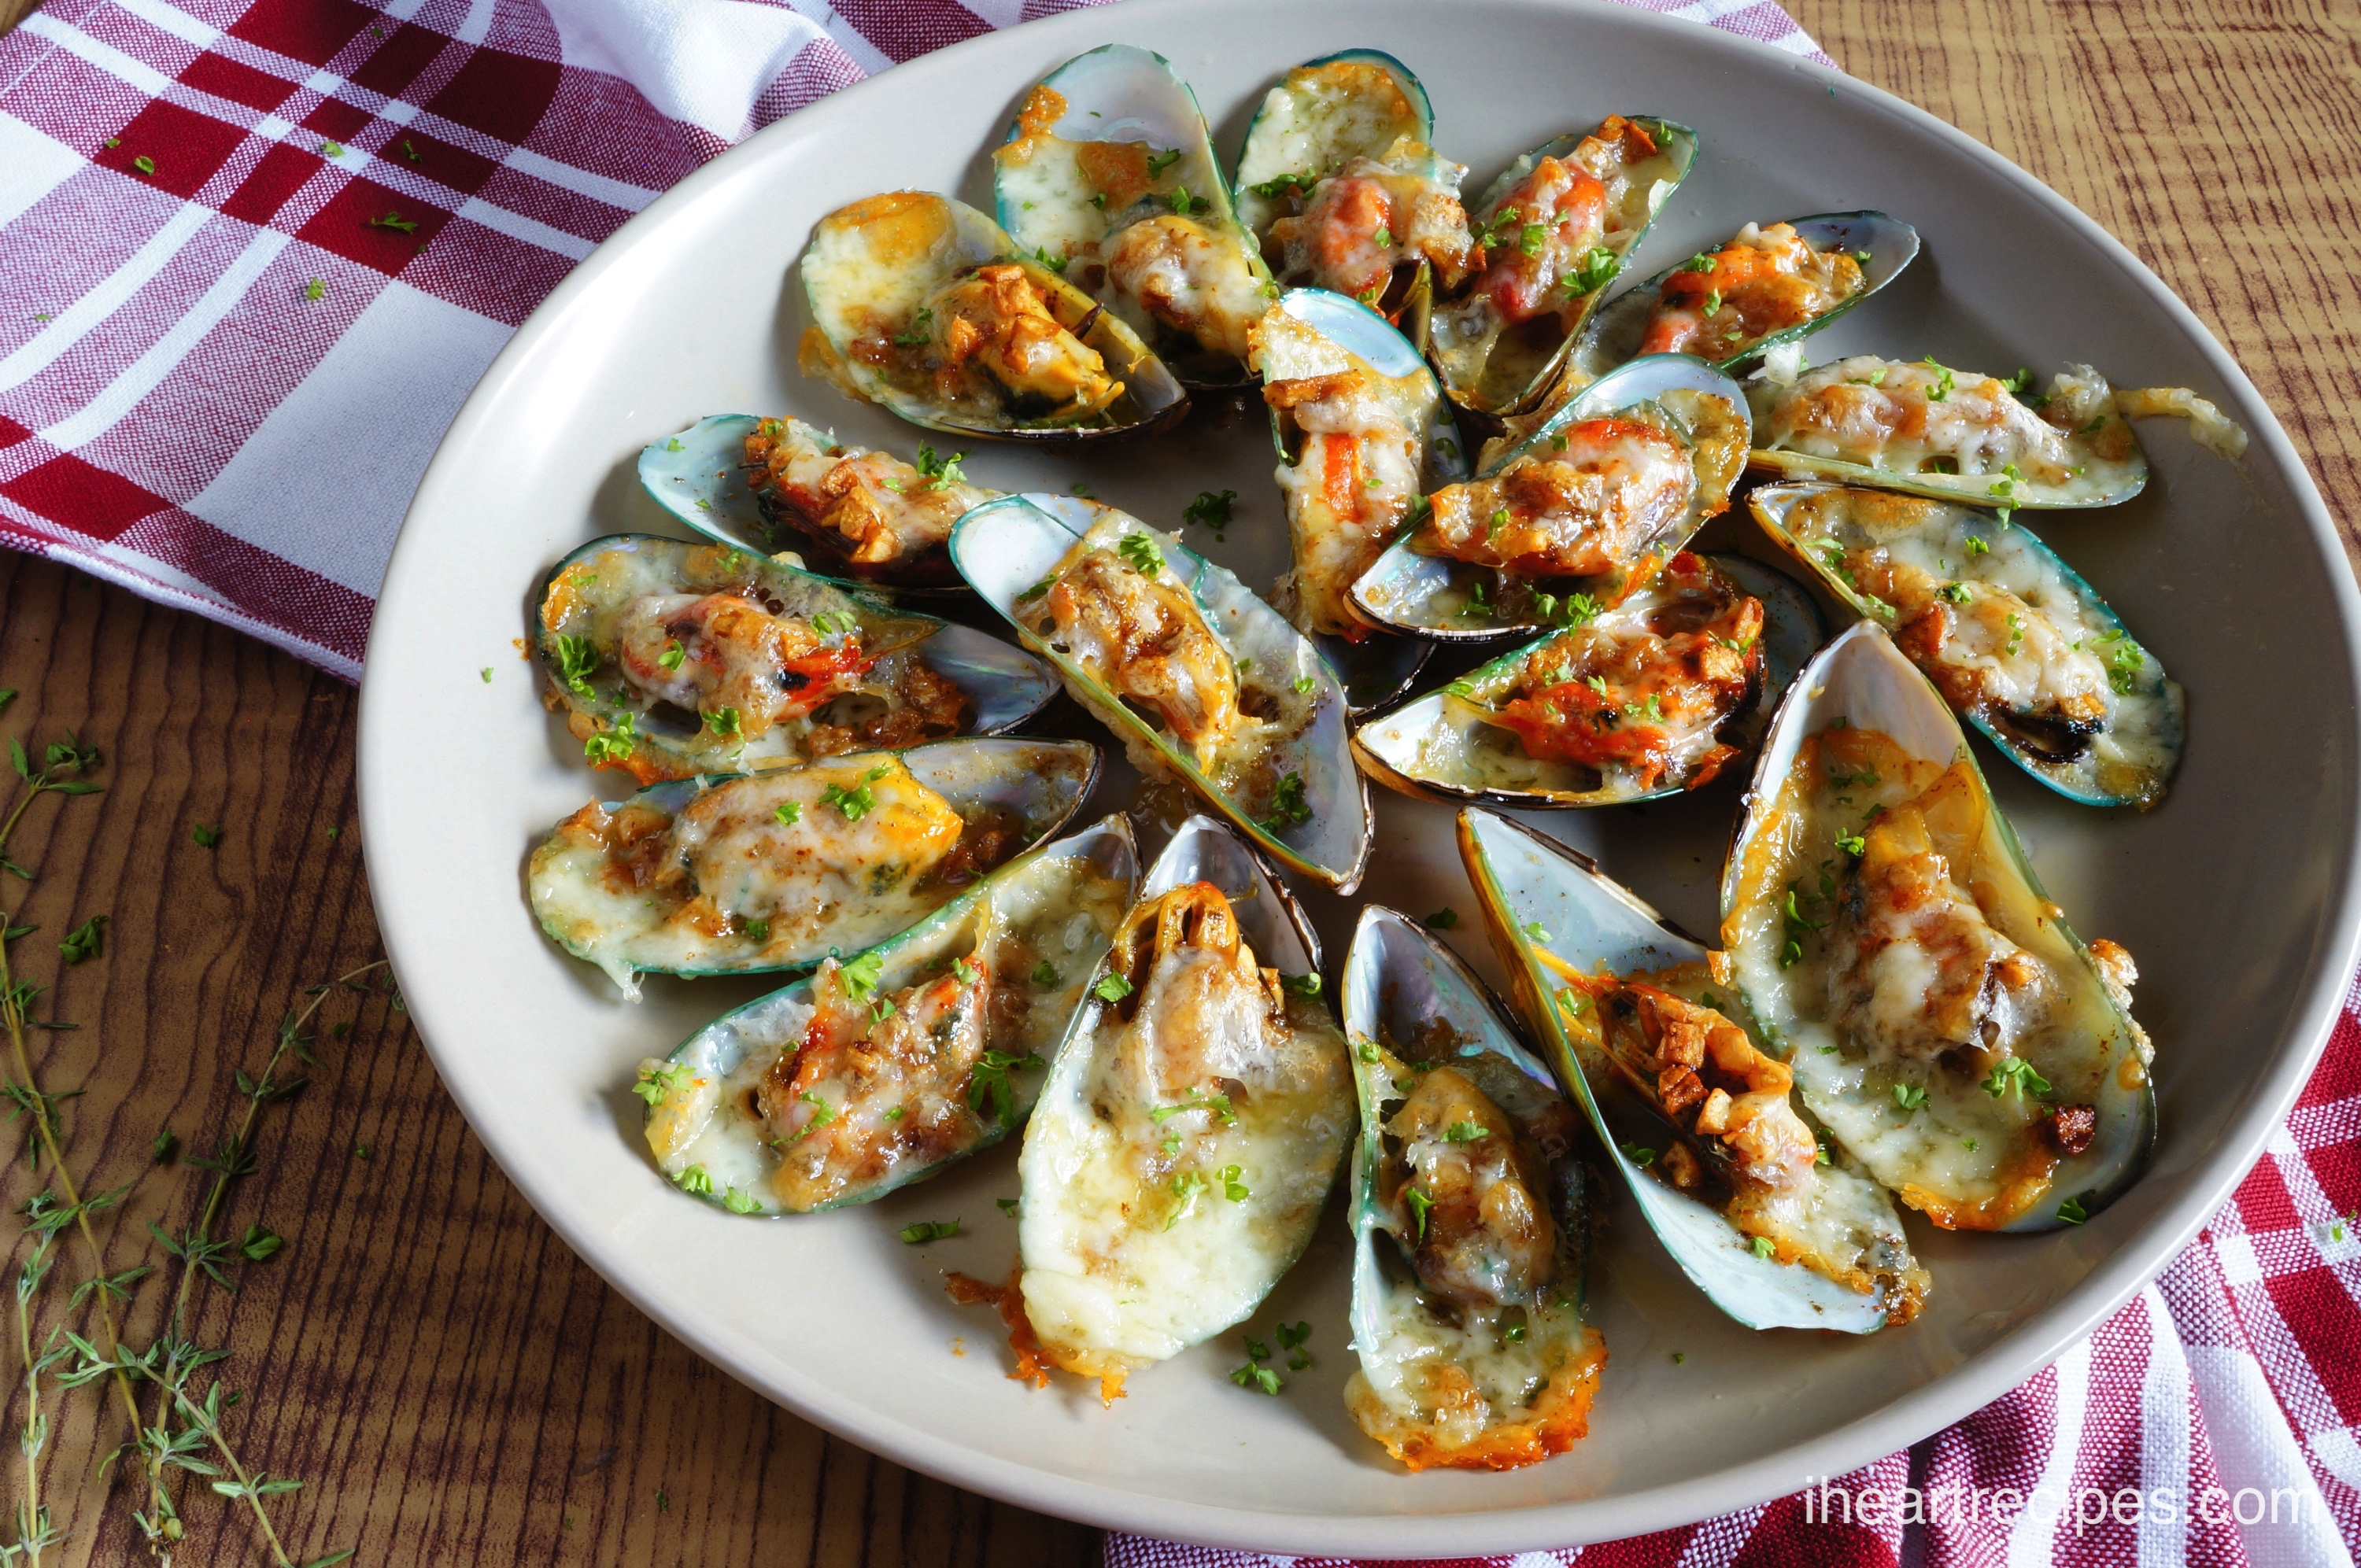 The garlicky butter sauce on these Cheesy Garlic Mussels is divine!